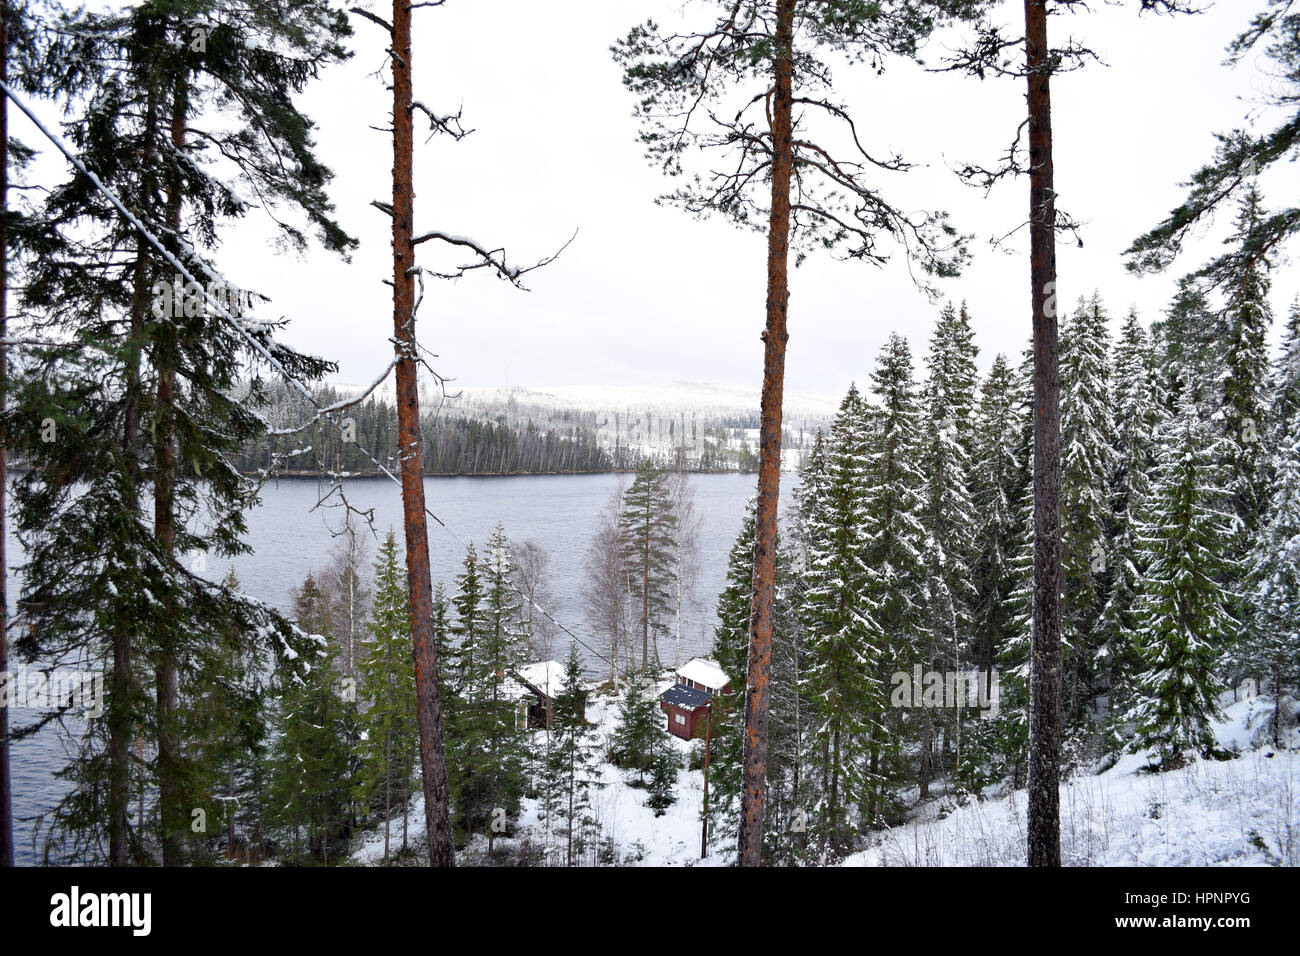 A lake from the forest on winter. - Stock Image